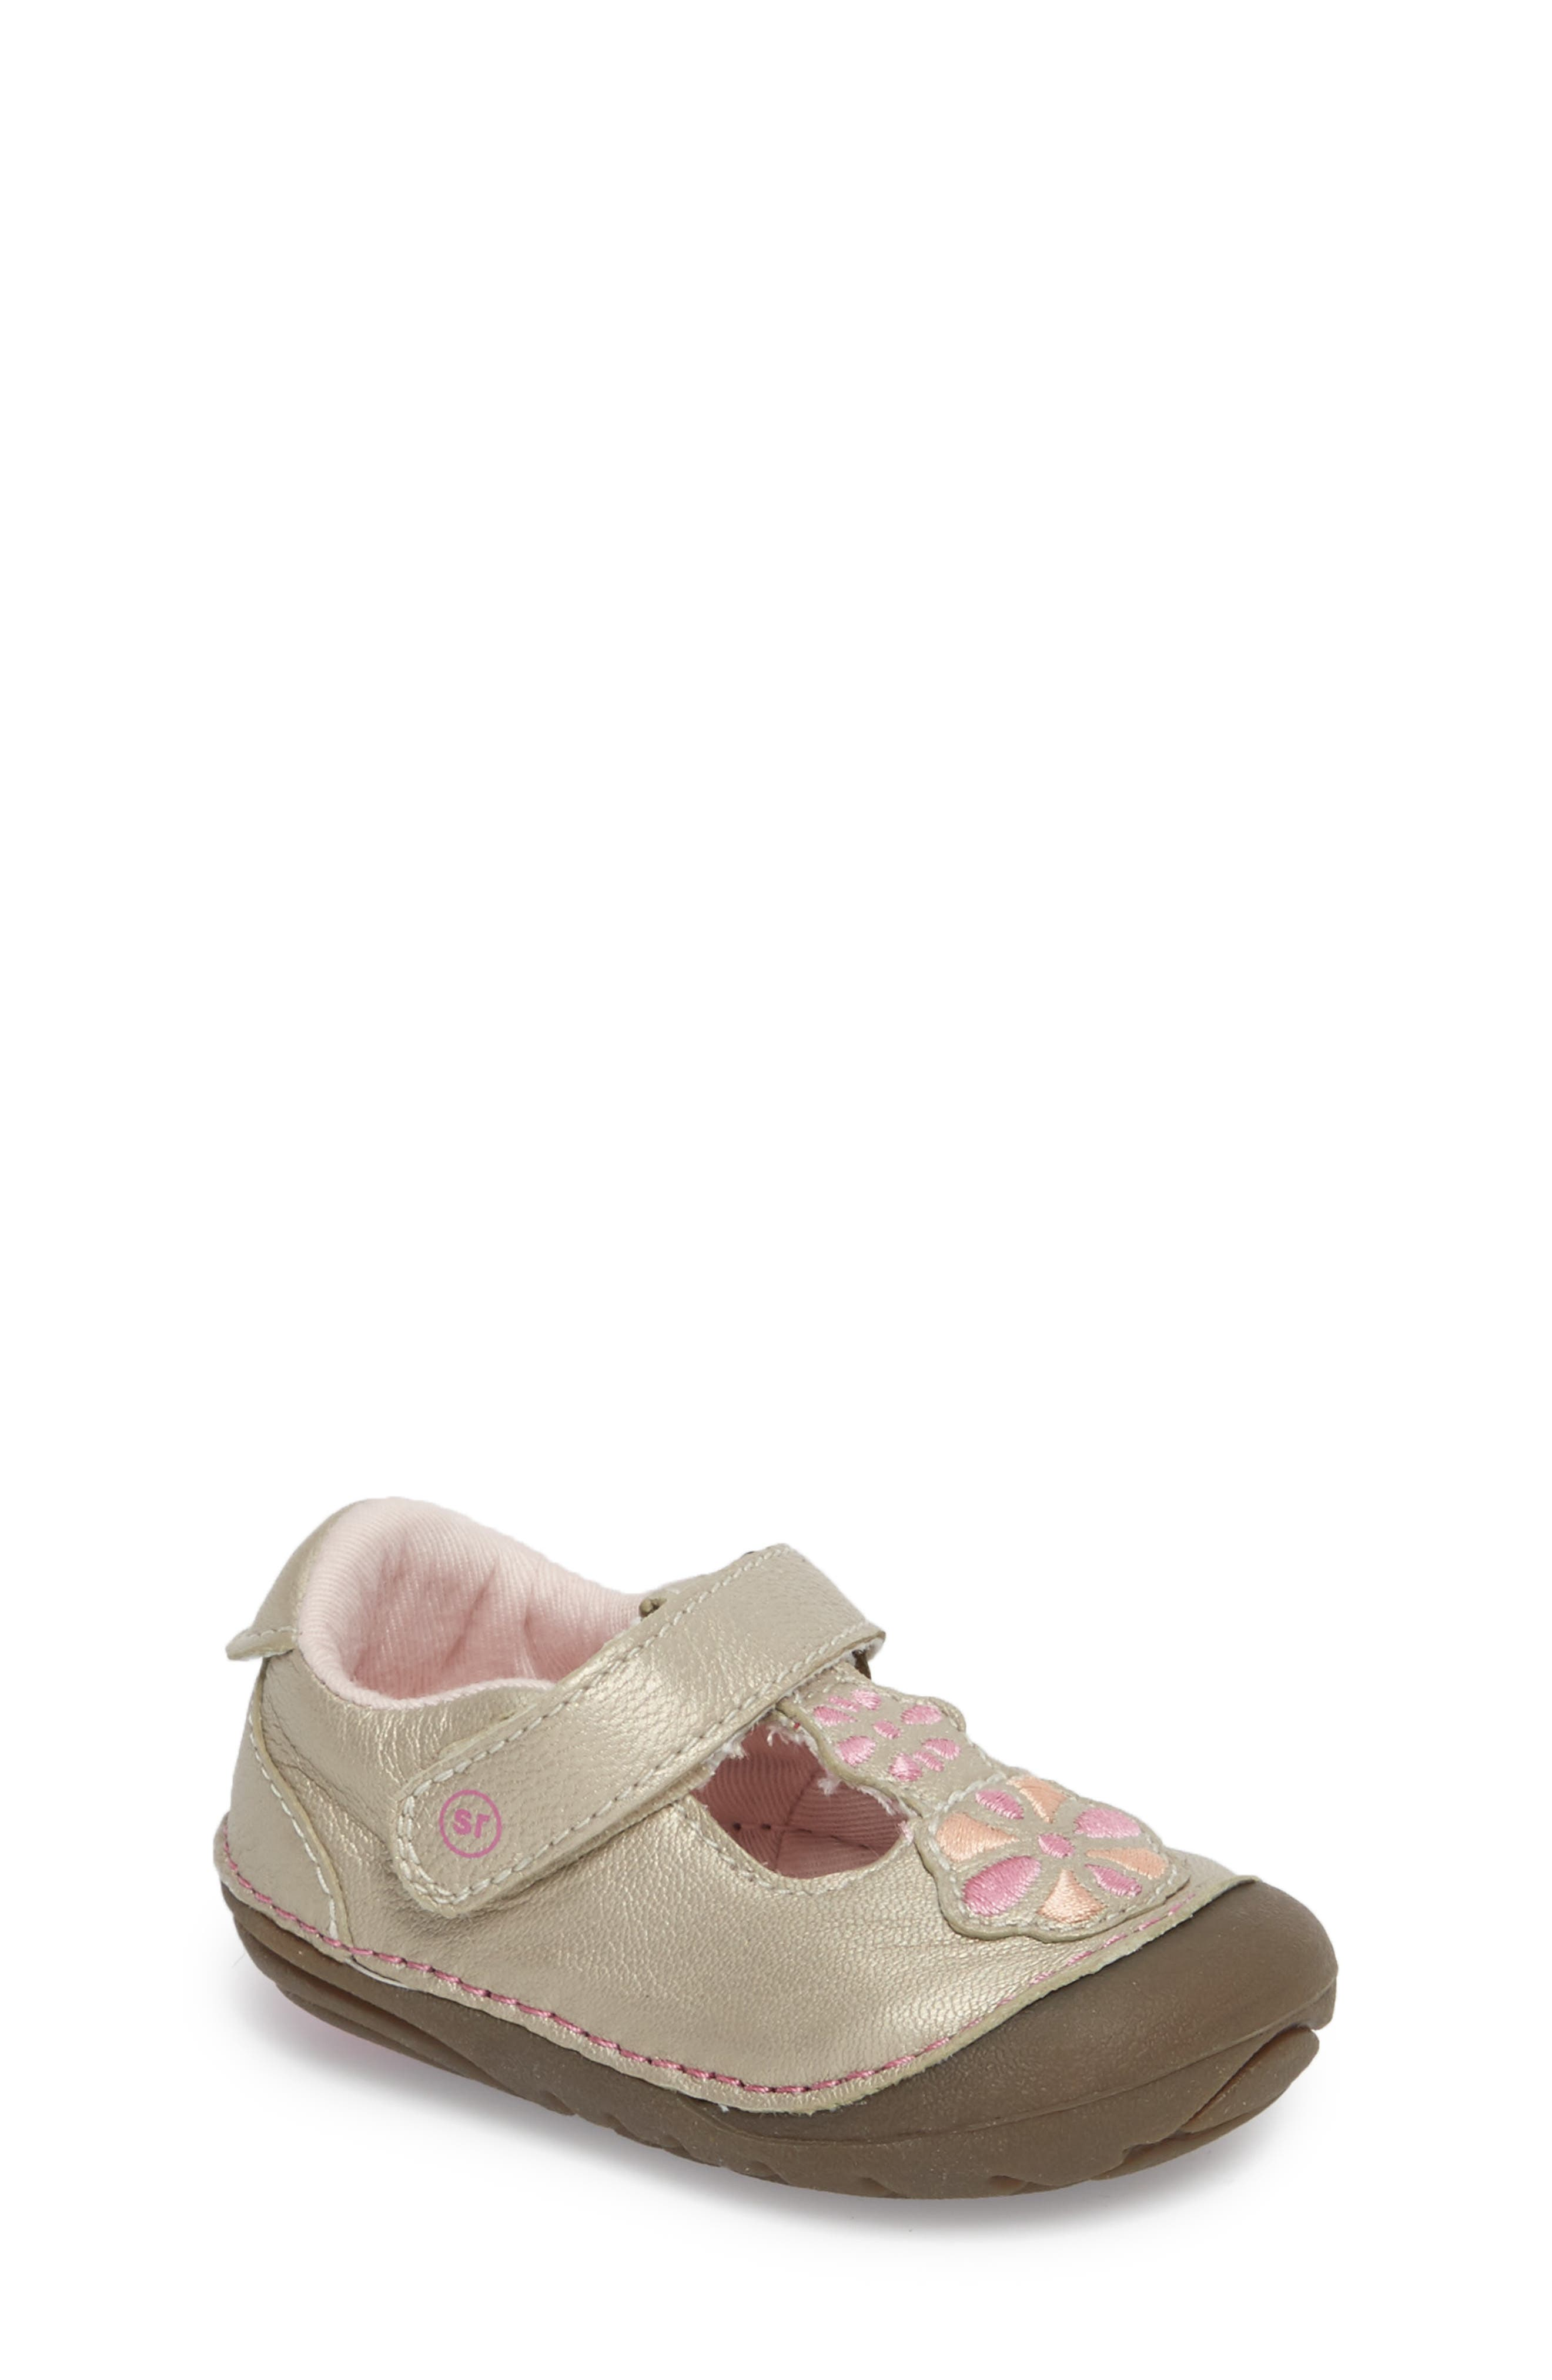 All Girls Stride Rite Baby & Walker Shoes